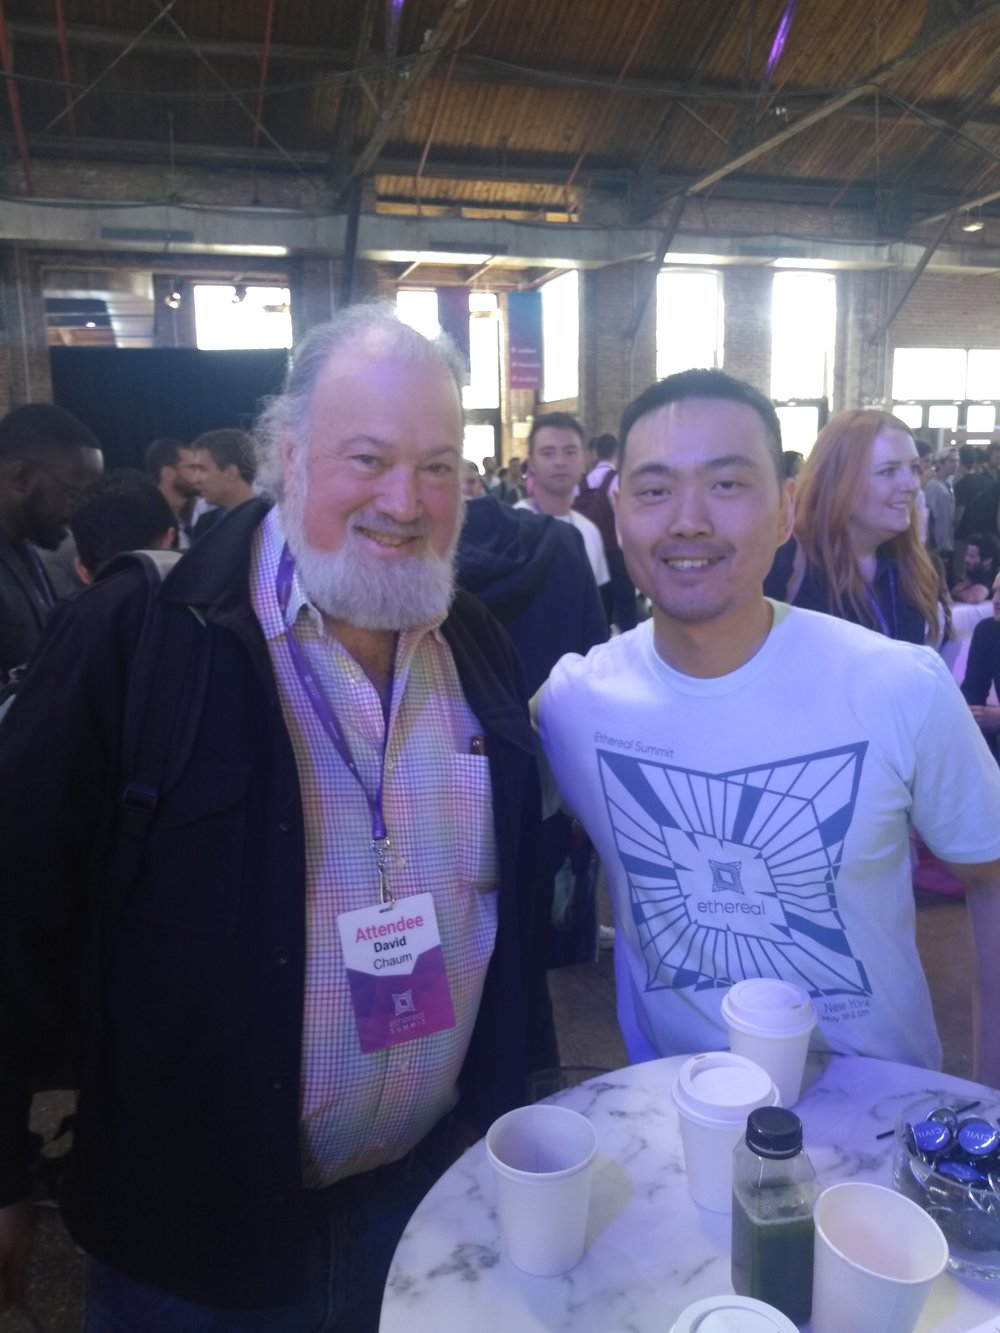 Meeting David Chaum was great. His project may be controversial, but his contributions are undeniable.